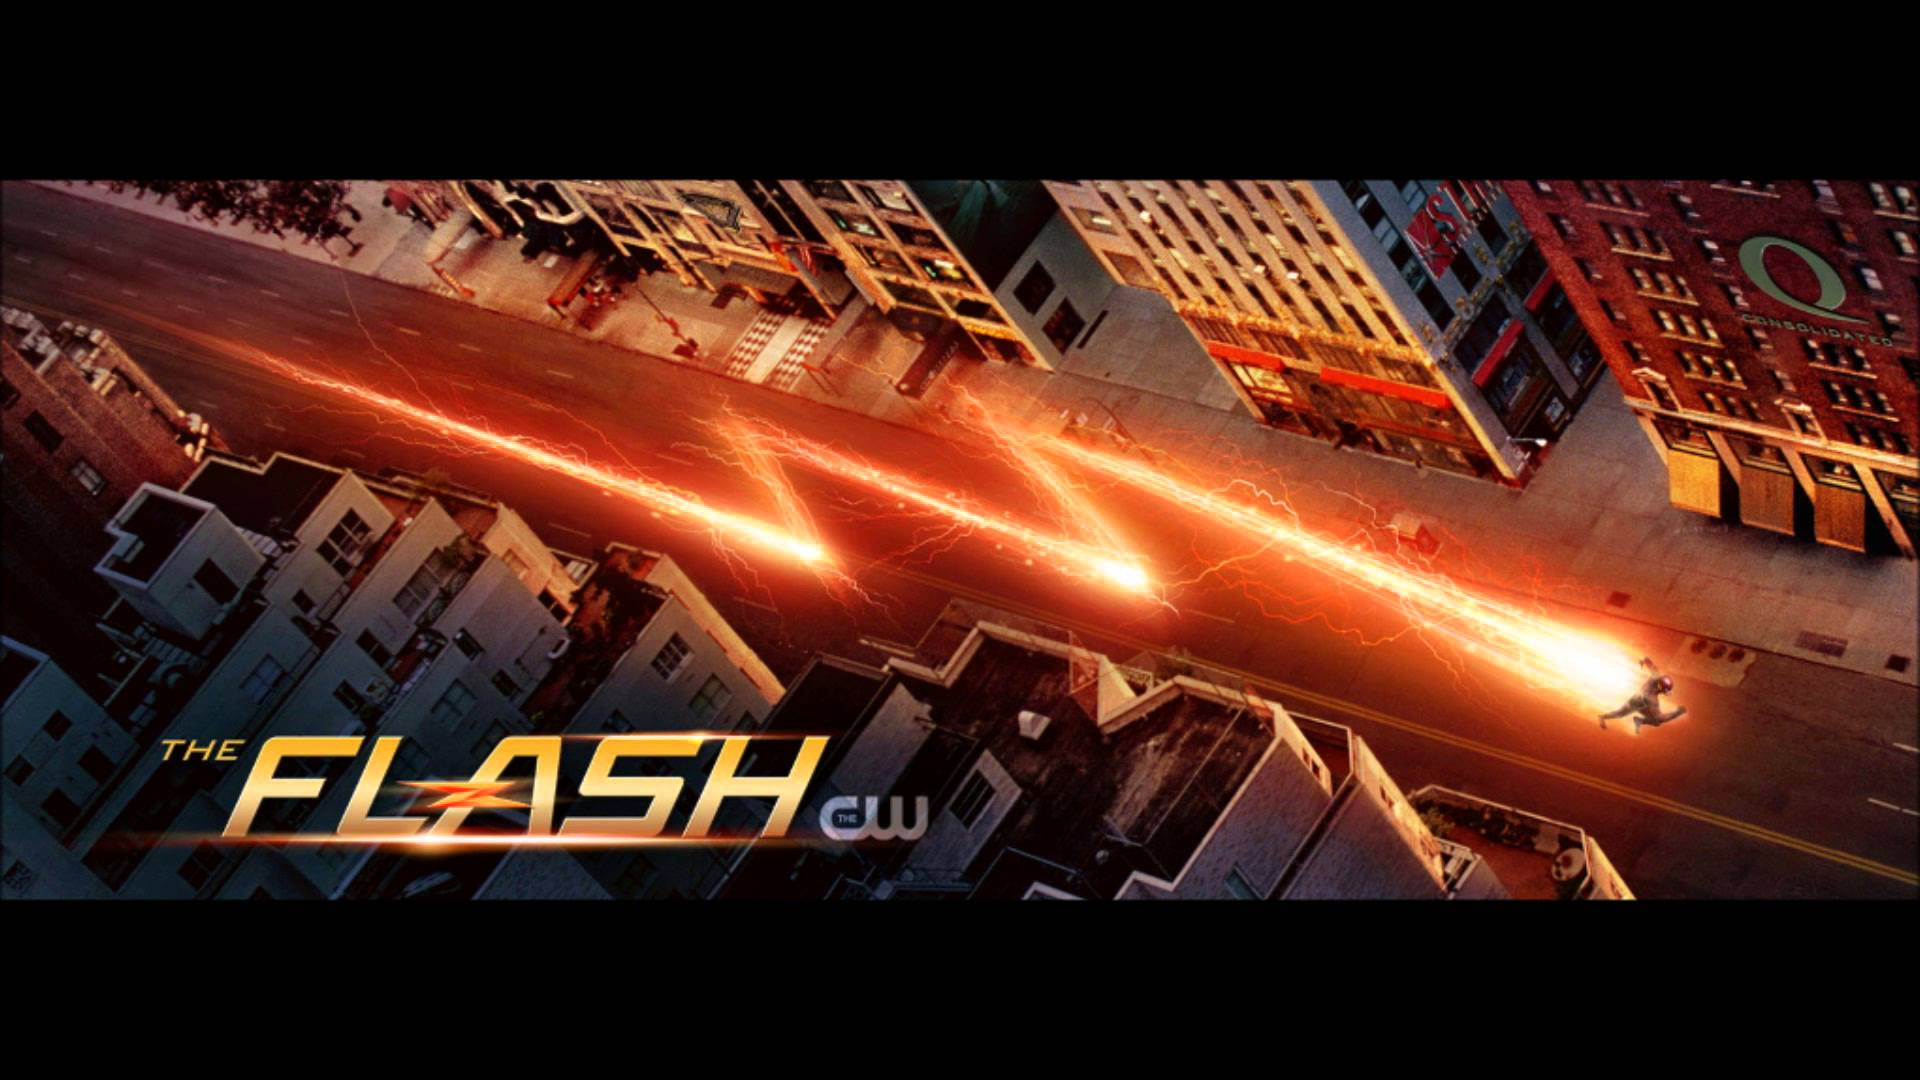 The Flash Wallpapers Group